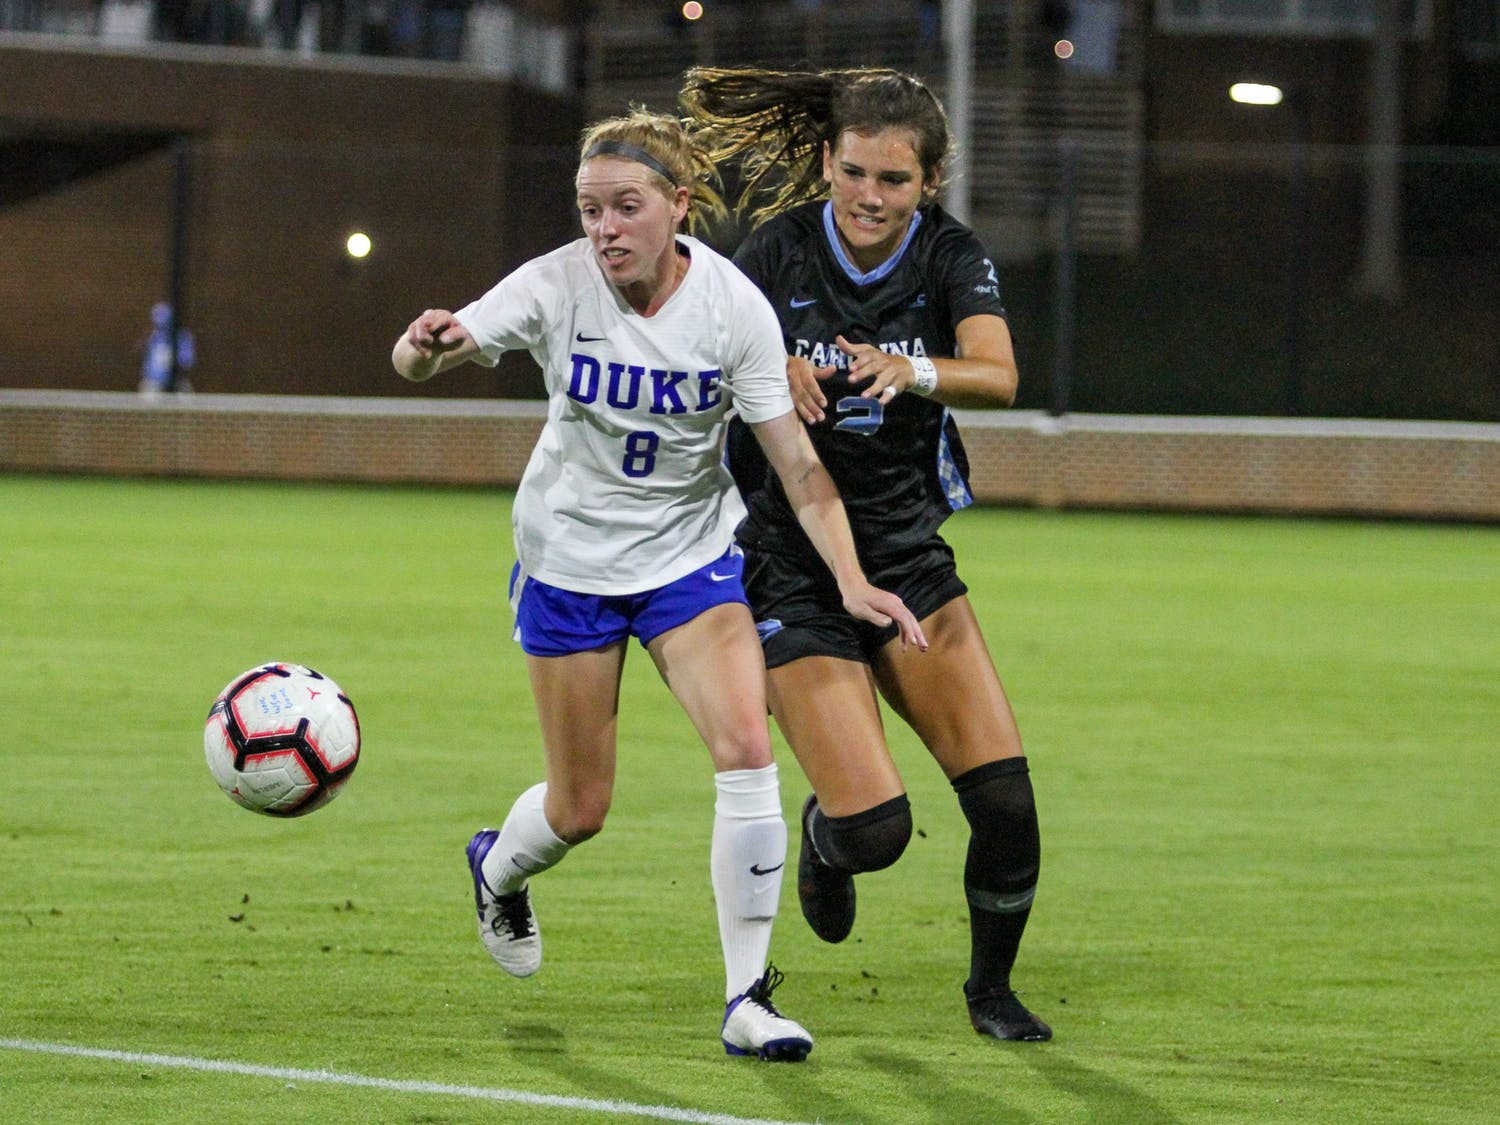 UNC freshman defender Abby Allen (2) defends against Duke senior forward Tess Boade (8) on Dorrance Field Oct. 23, 2020. The Tar Heels beat the Blue Devils 1-0.